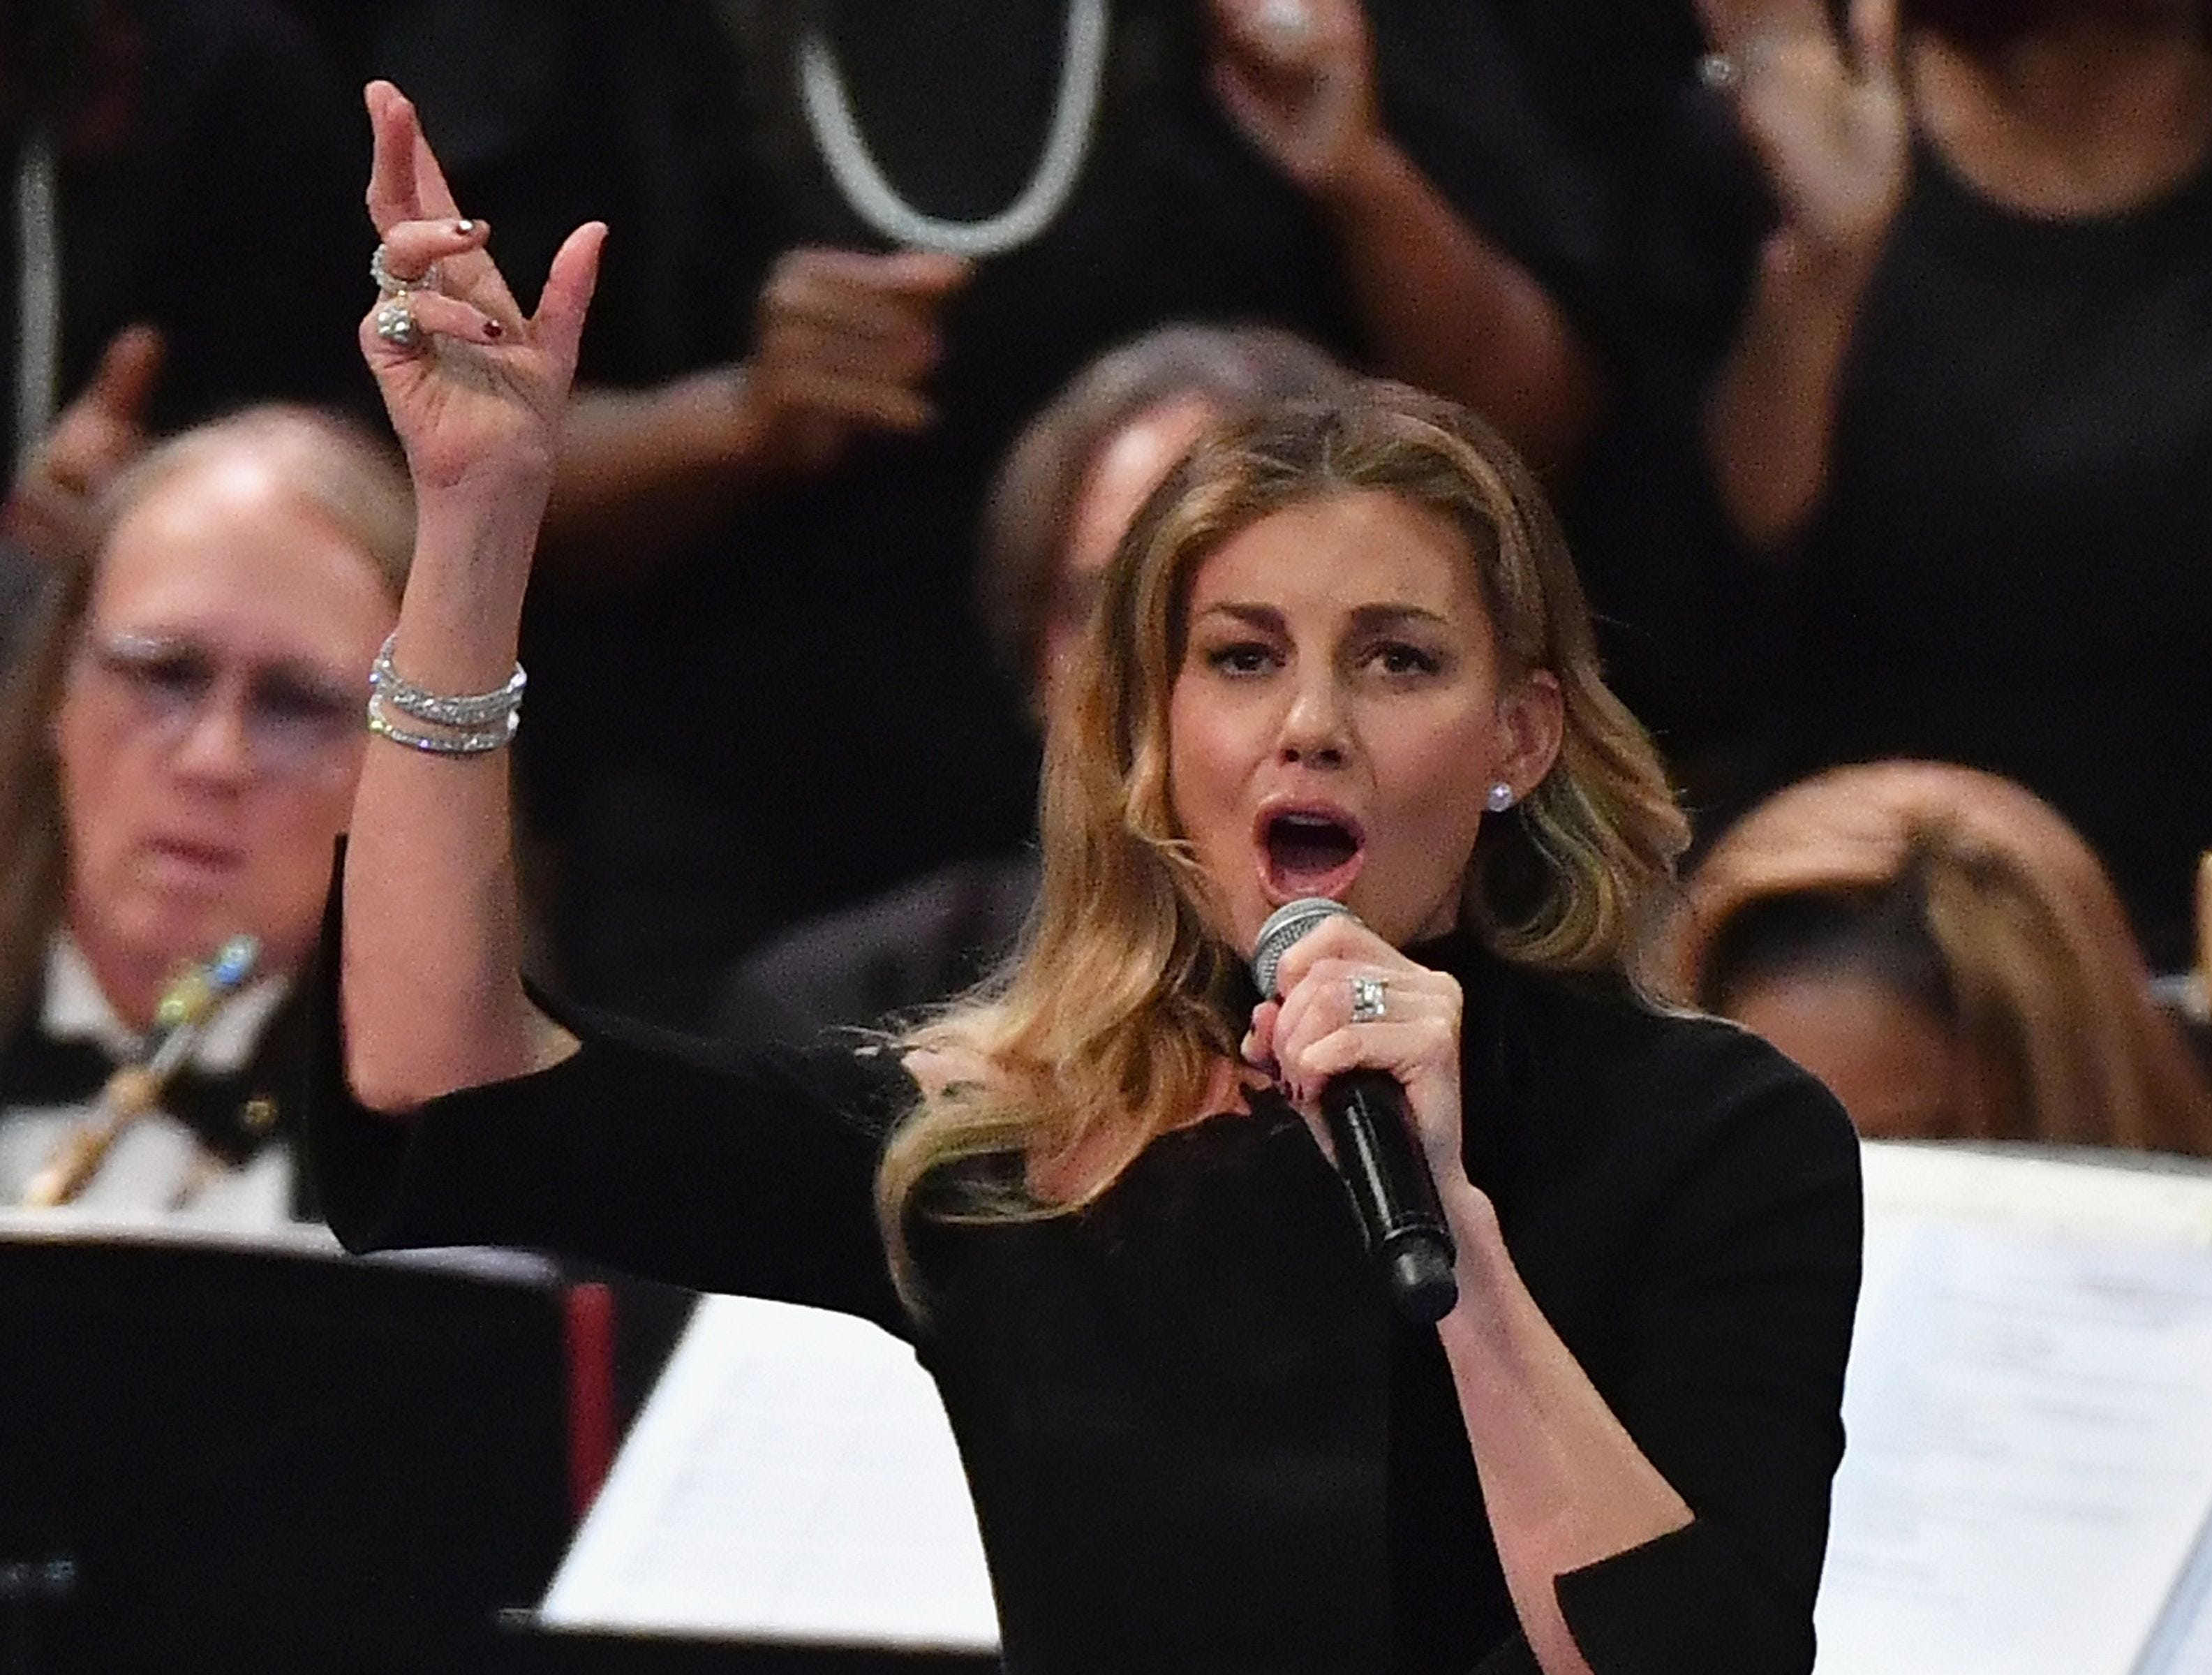 Faith Hill performs during Aretha Franklin's funeral at Greater Grace Temple on August 31, 2018 in Detroit, Michigan. (Photo by Angela Weiss / AFP)ANGELA WEISS/AFP/Getty Images ORG XMIT: Funeral f ORIG FILE ID: AFP_18R1Y0